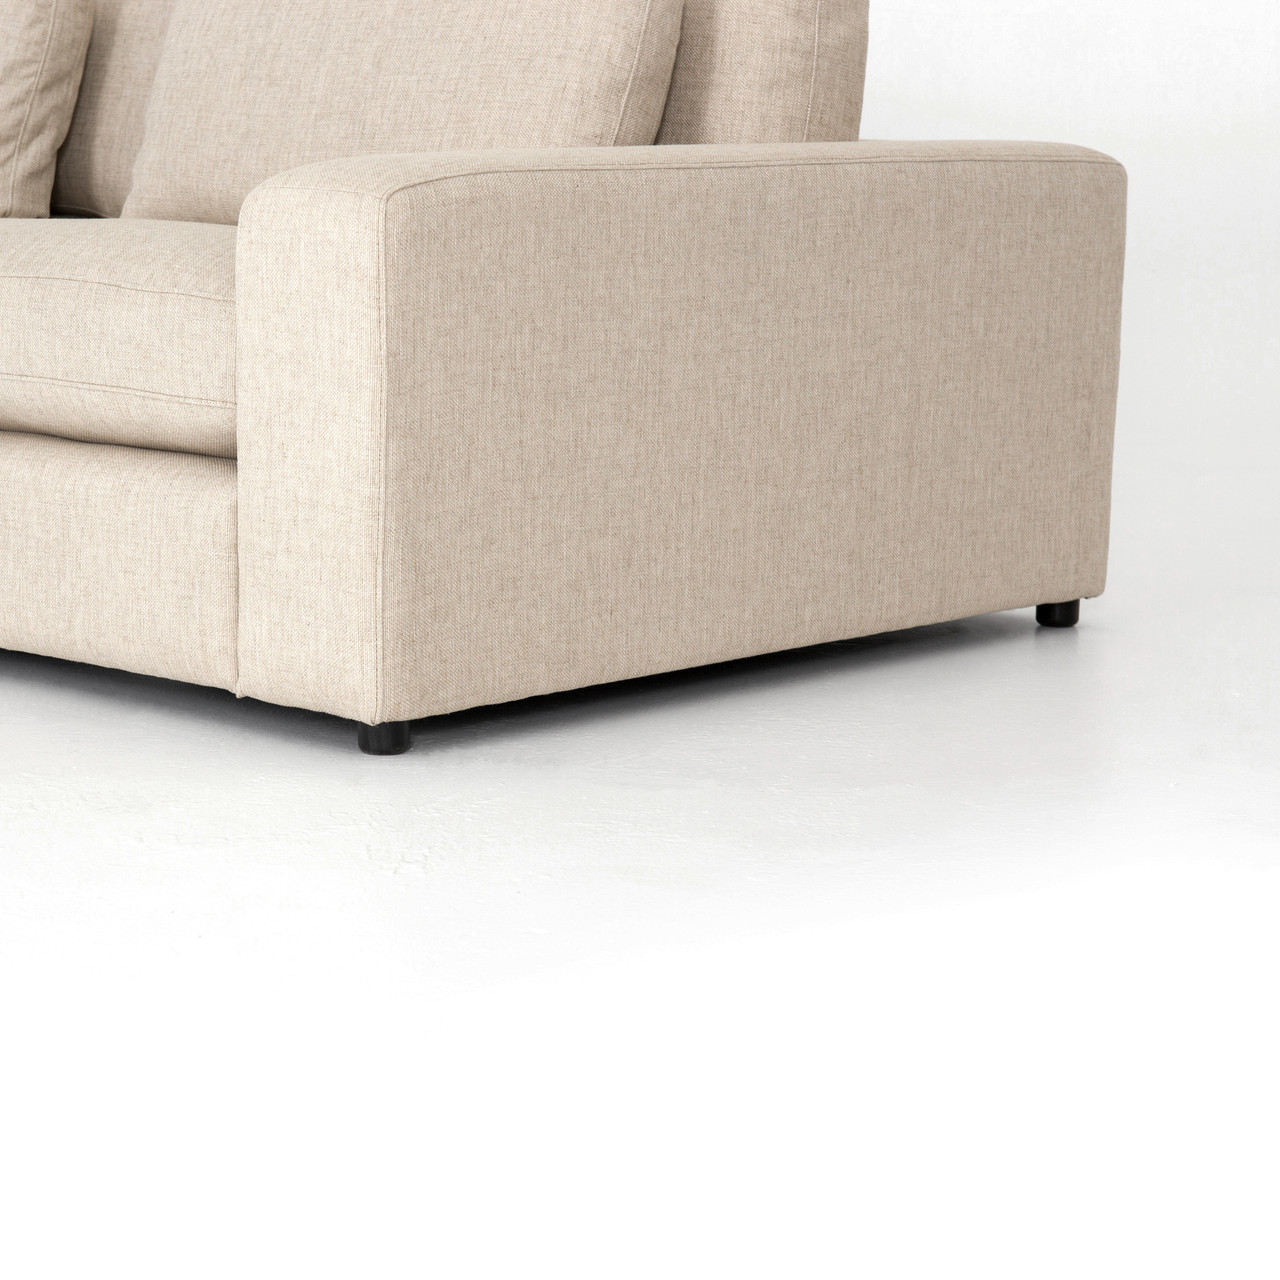 Bradley 5 Piece Sectional - Essence Natural